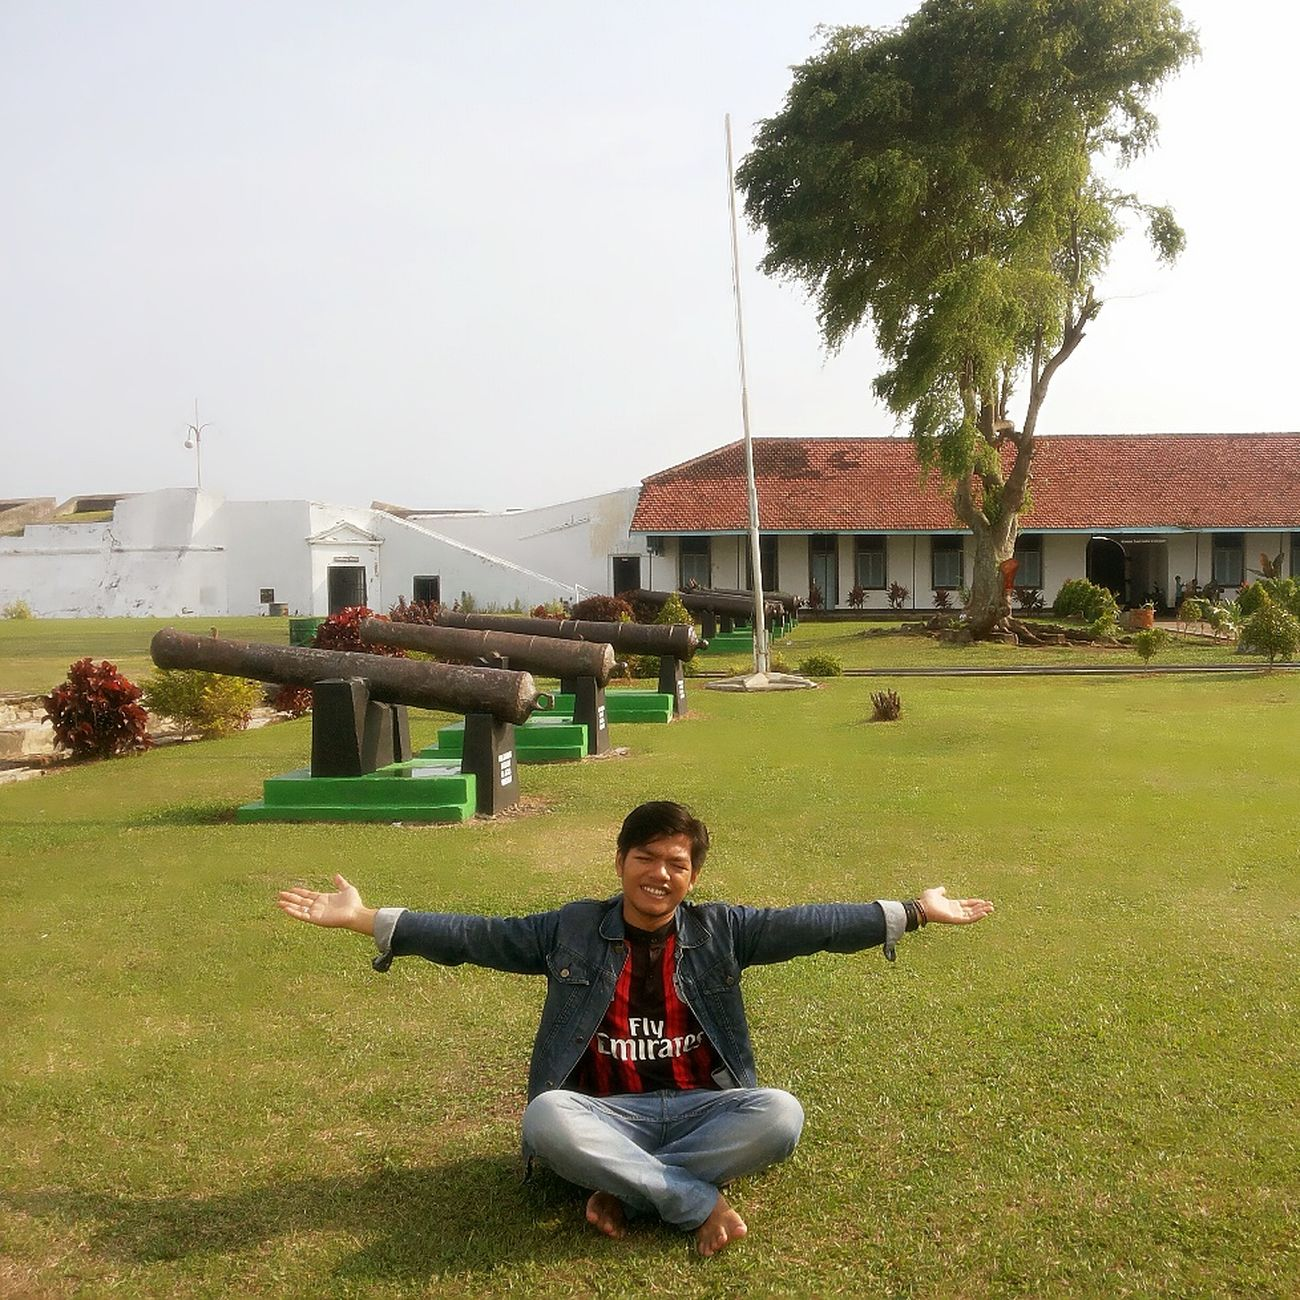 Latepost. Explorebengkulu